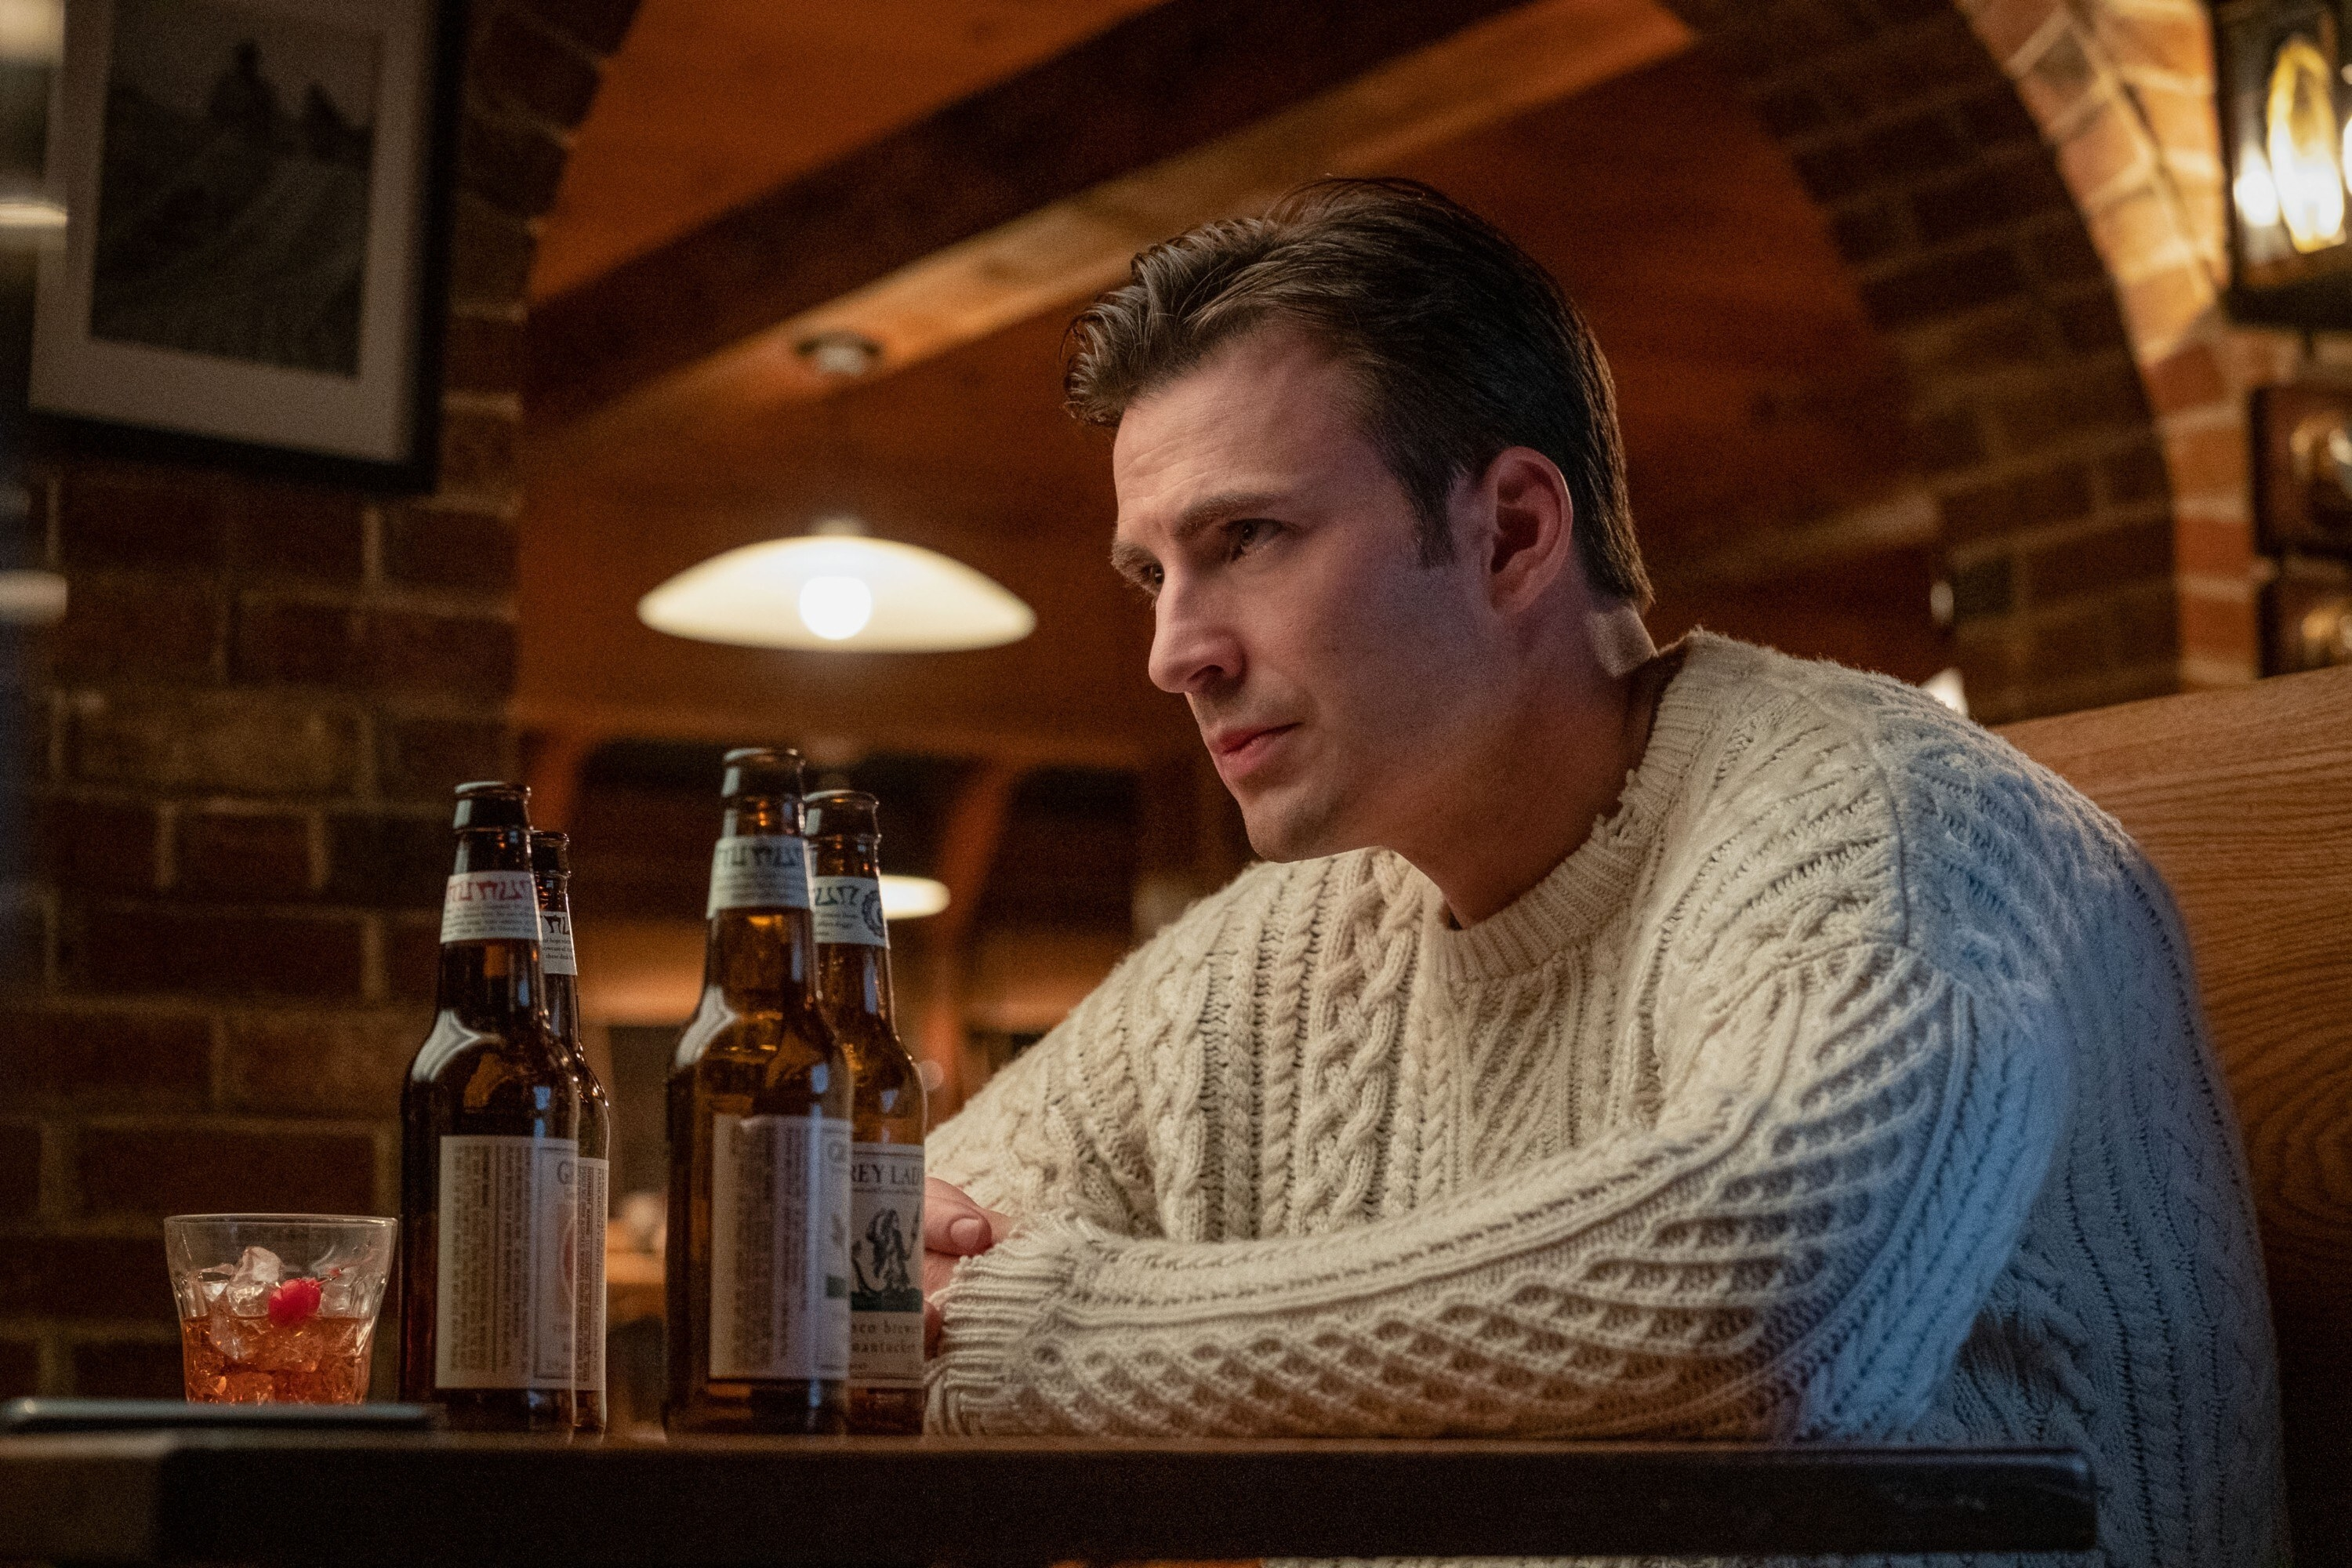 """Chris Evans as Hugh Ransom Drysdale in """"Knives Out"""" wearing his famous sweater"""